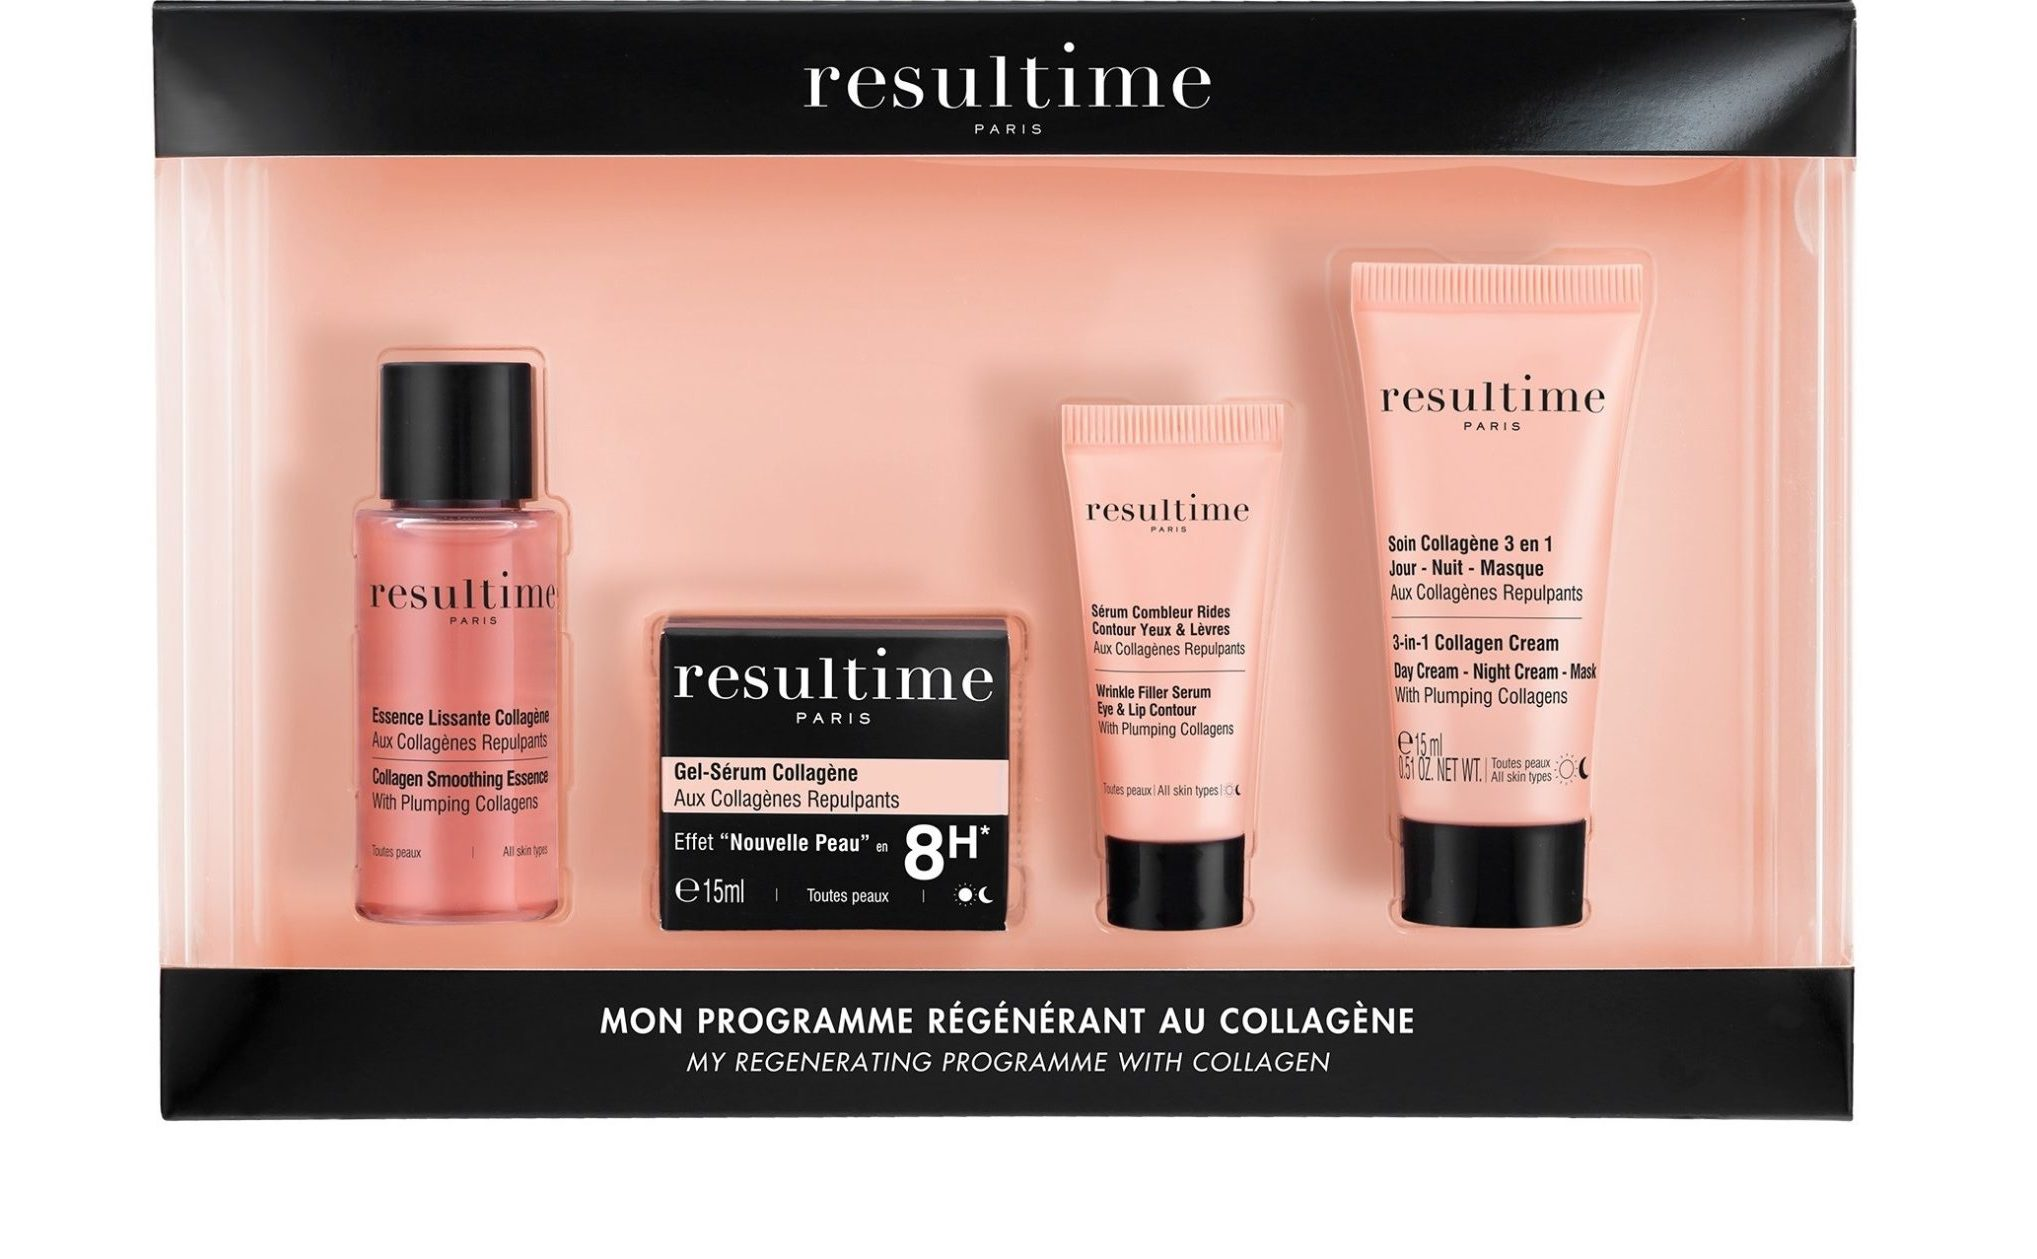 RESULTIME Travel Kit Collagene